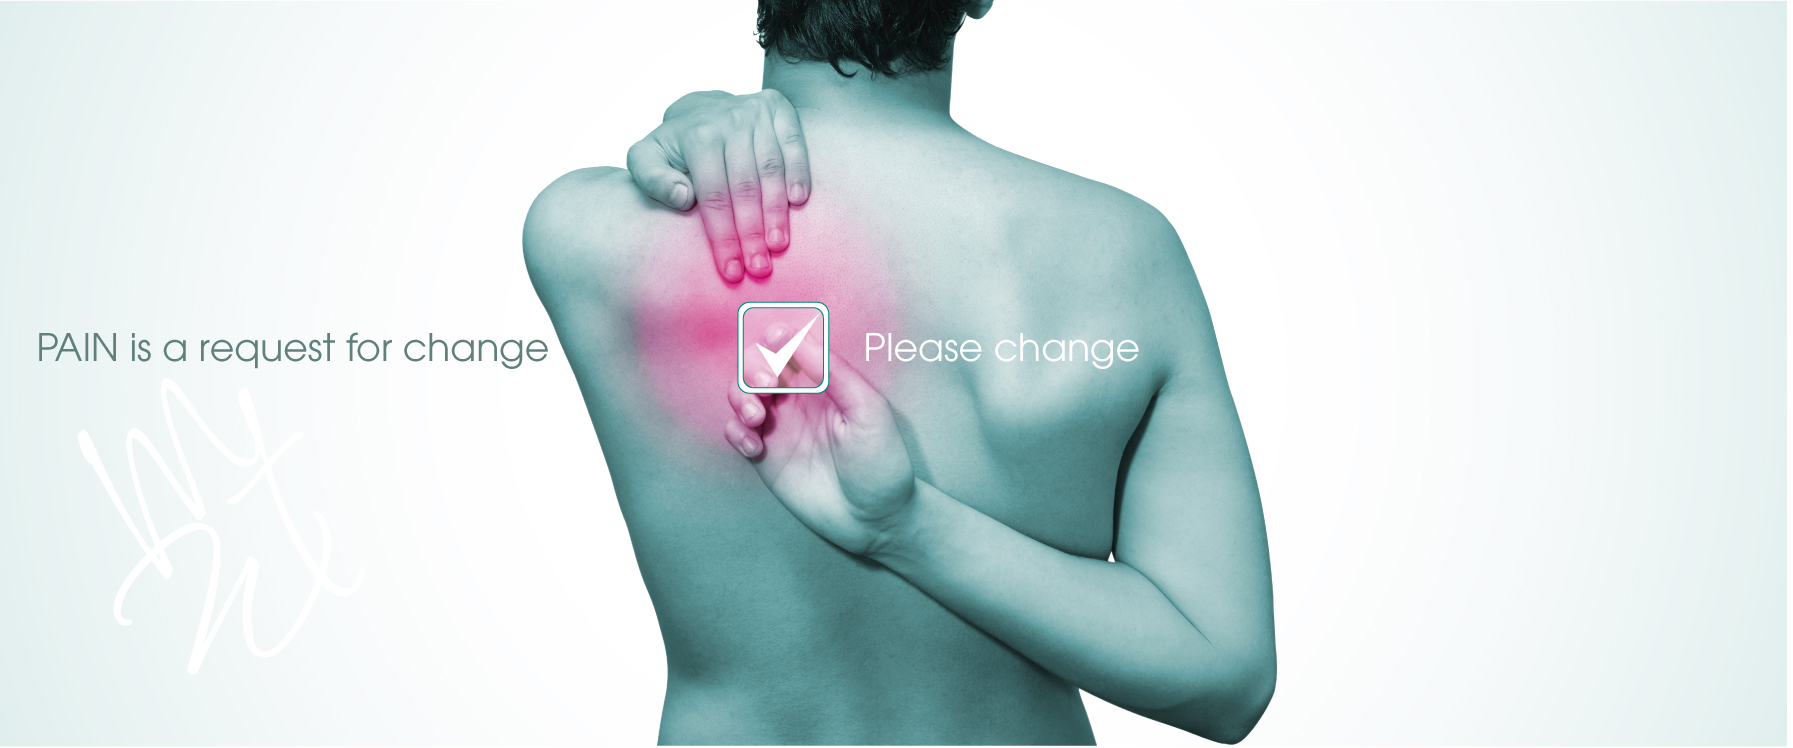 man clicking please change button where his back is sore. pain is a request for change. please change